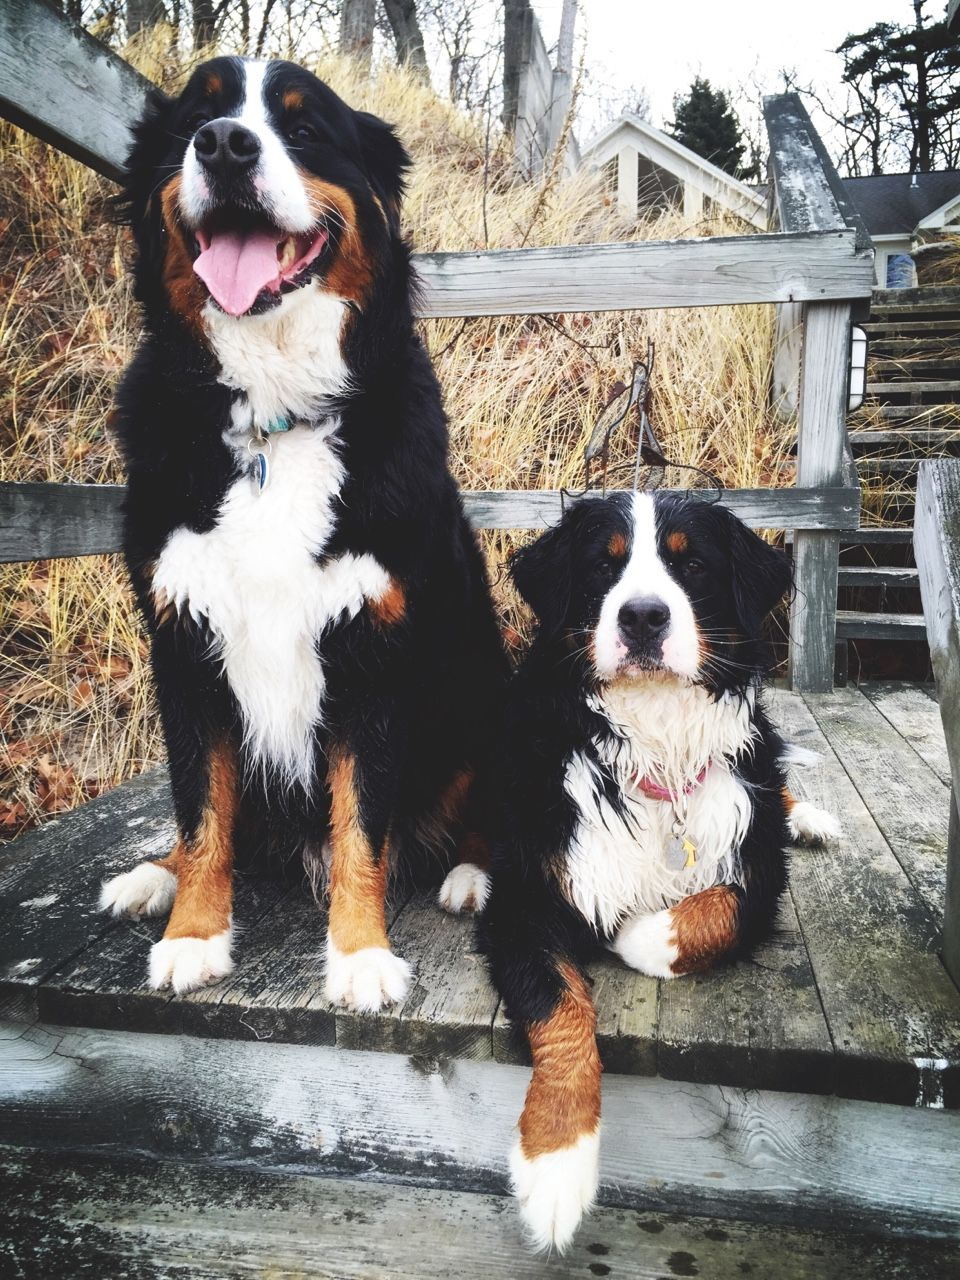 Bernese Mountain Dogs | Dogs  Puppies  Dogs  | Dogs, Mountain dogs